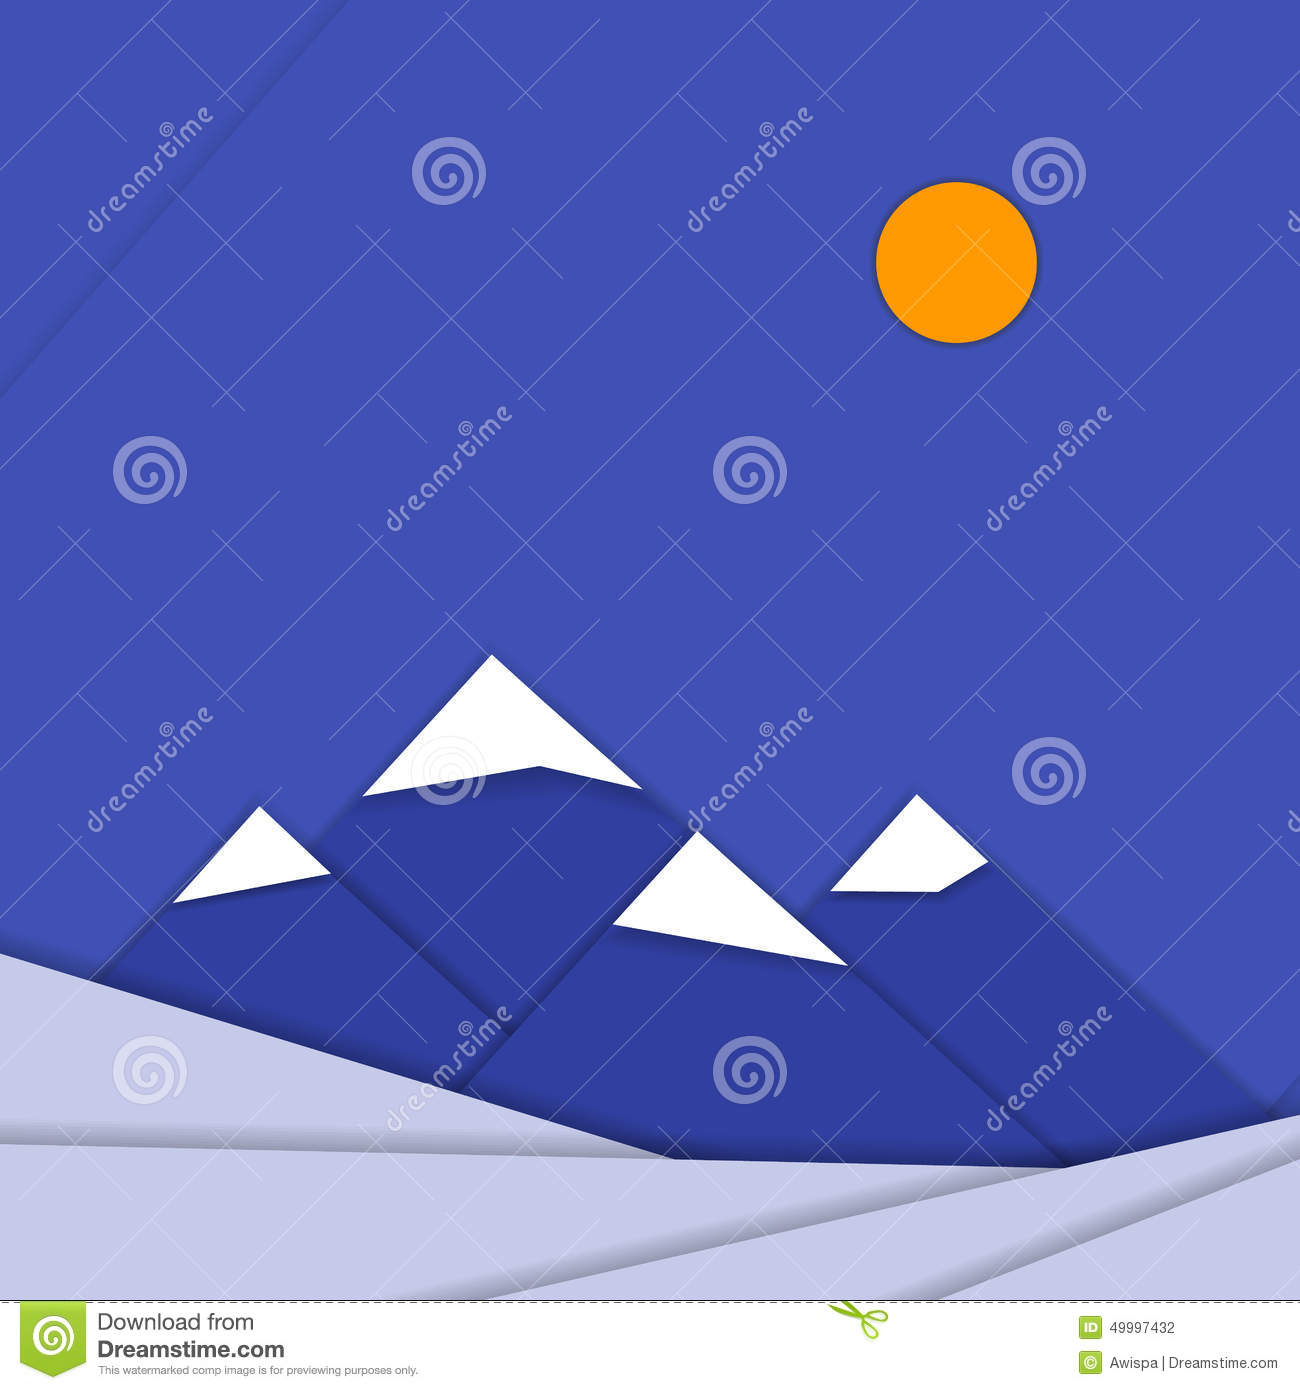 Material Design Landscape Background With Stock Vector